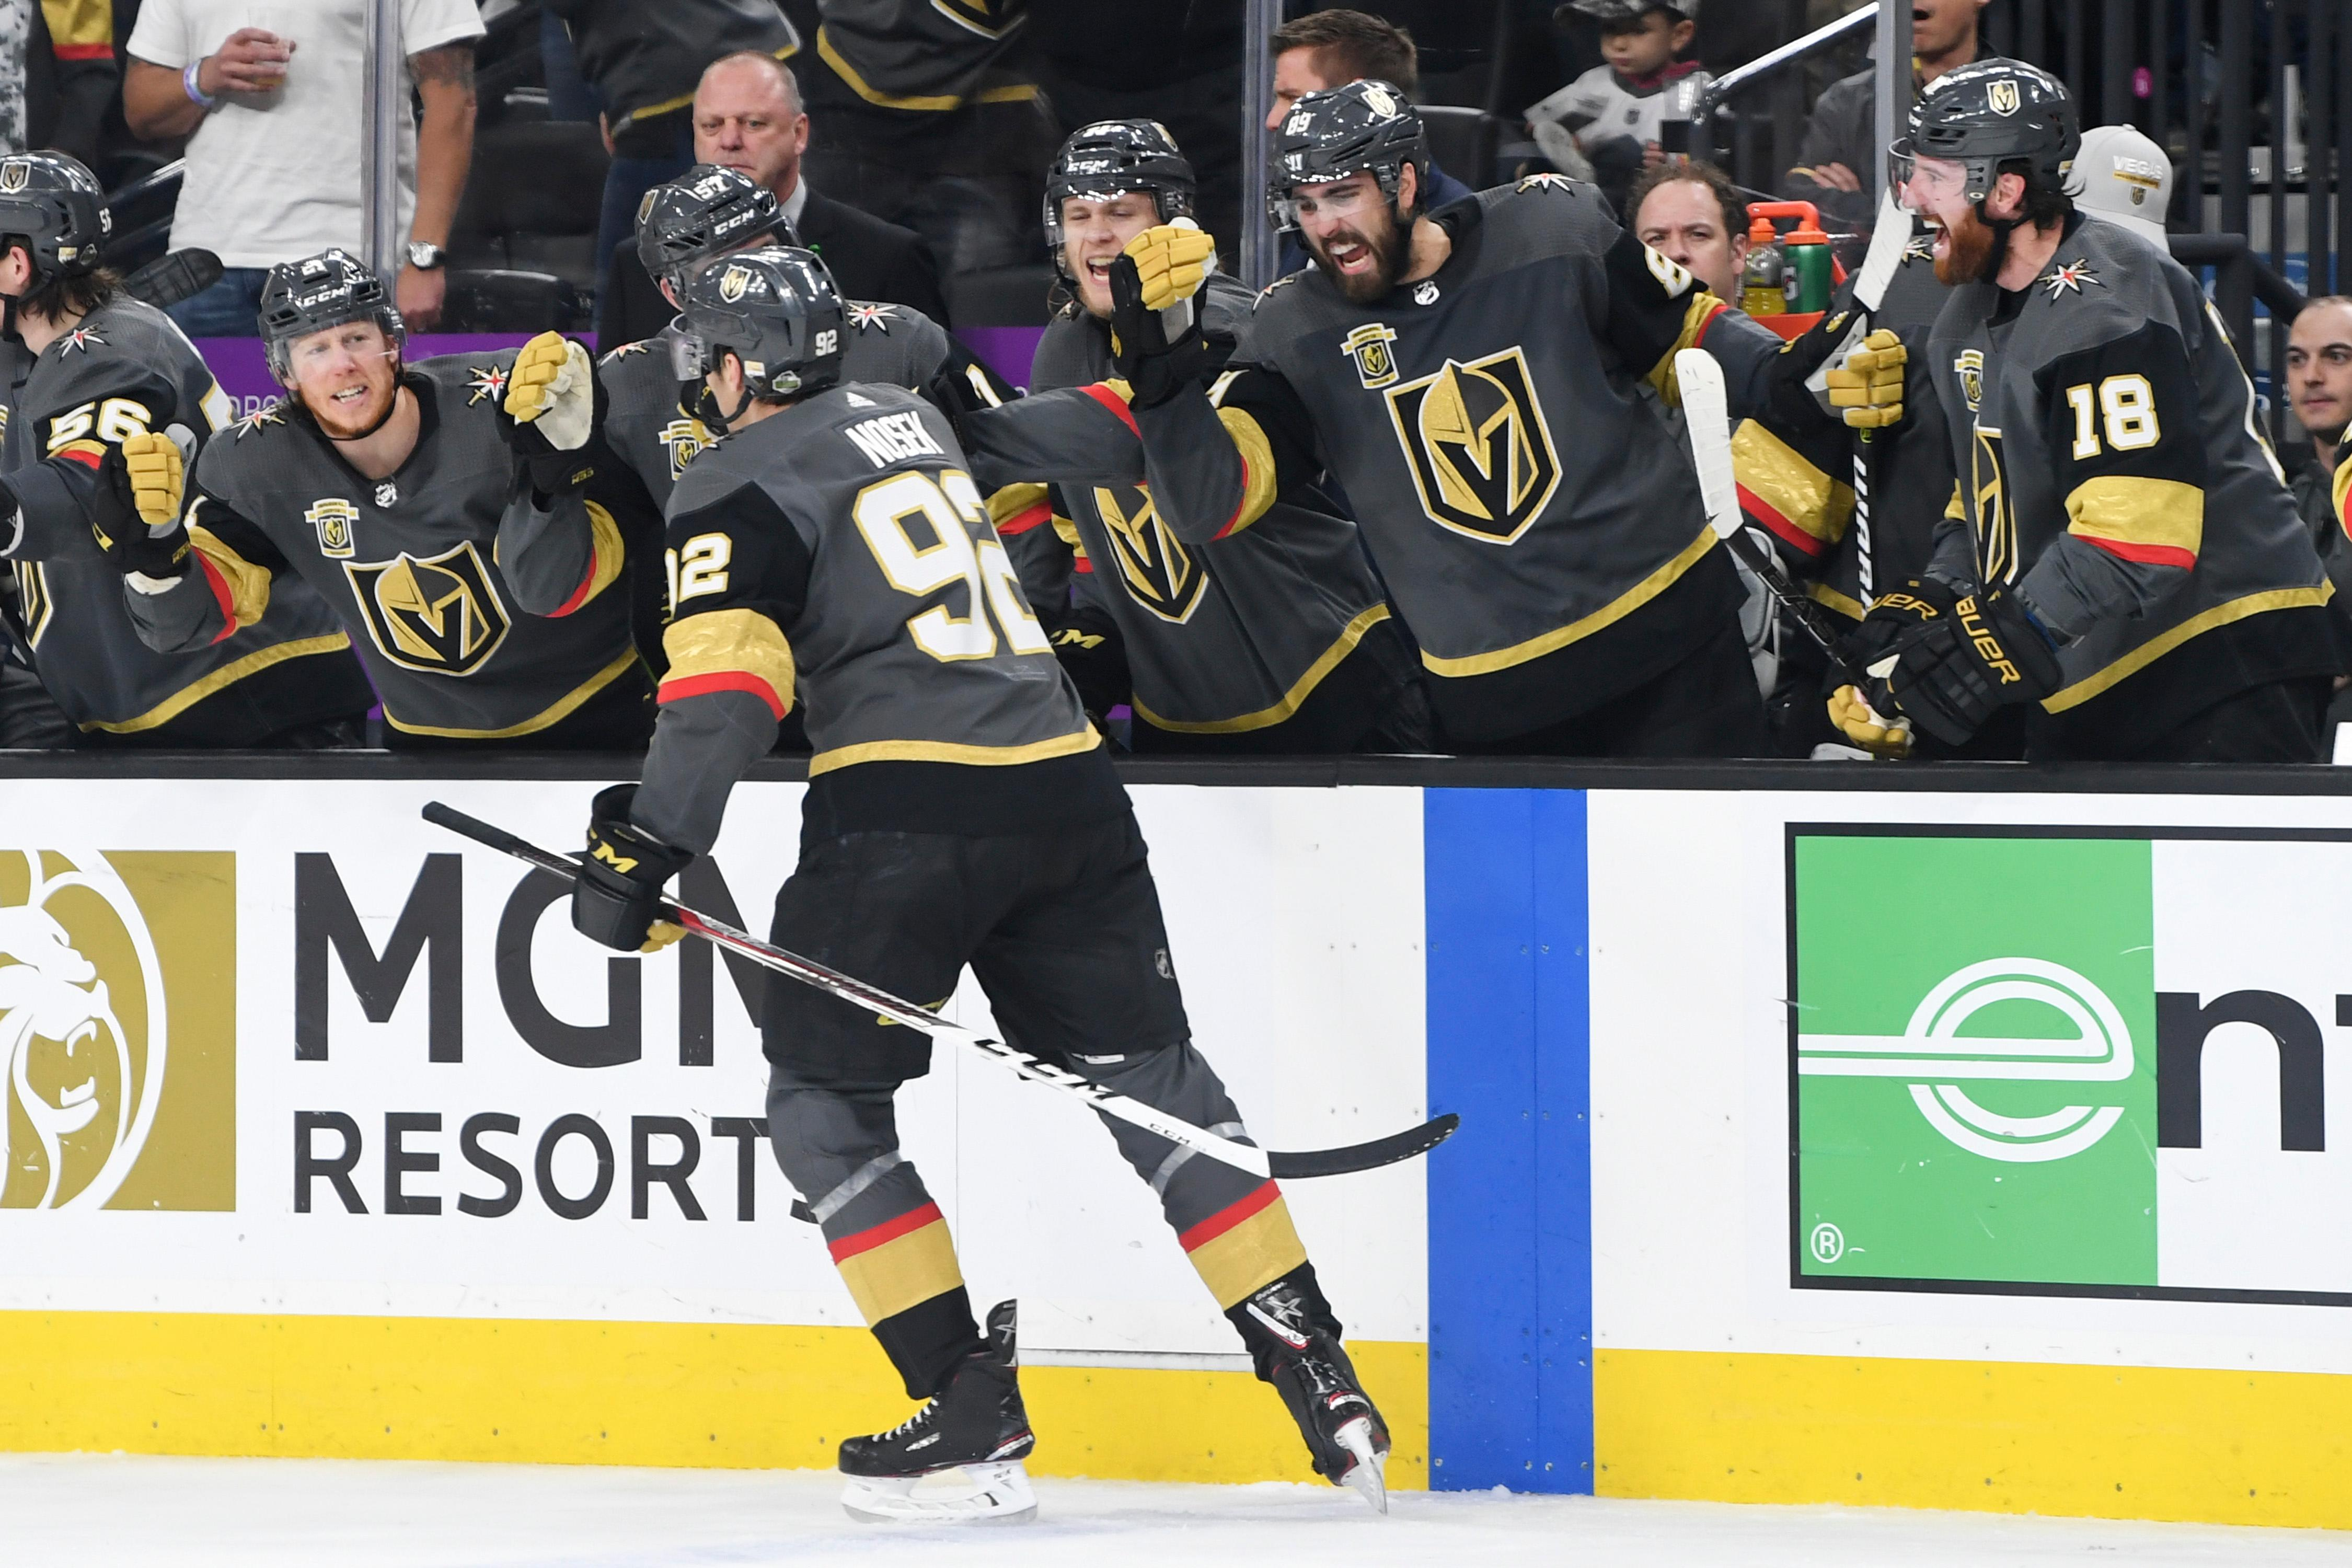 Vegas Golden Knights players congratulate left wing Tomas Nosek (92) after scoring a goal against the Winnipeg Jets during Game 4 of their NHL hockey Western Conference Final game Friday, May 18, 2018, at T-Mobile Arena. CREDIT: Sam Morris/Las Vegas News Bureau